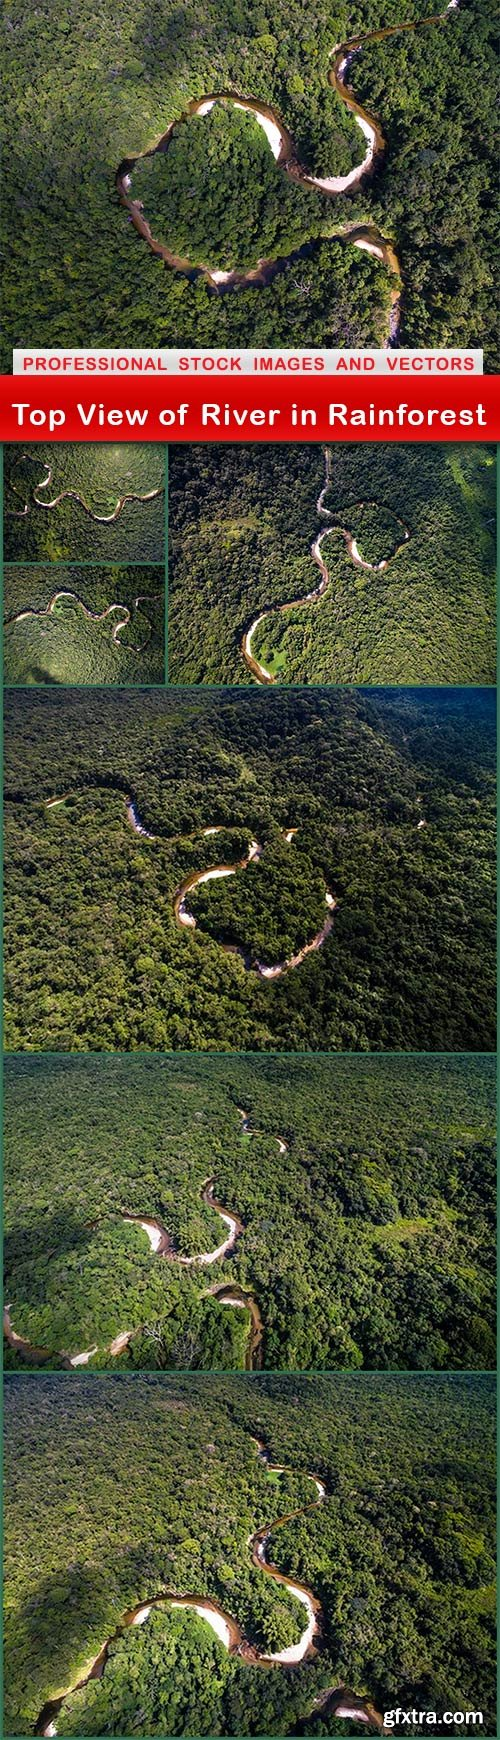 Top View of River in Rainforest - 7 UHQ JPEG